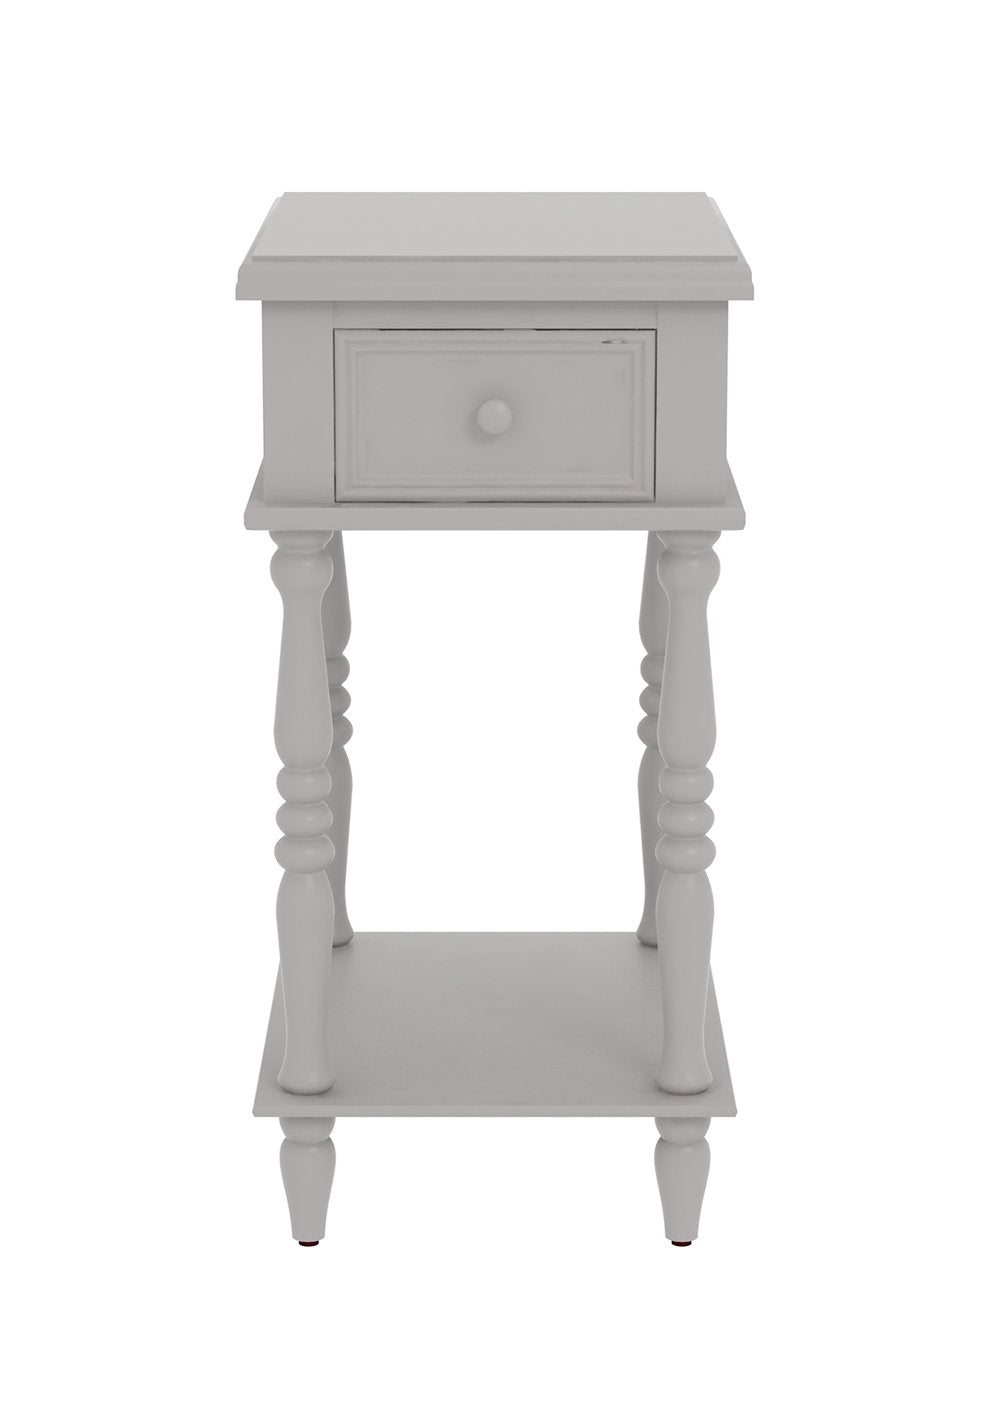 End table with drawer - Adams Accent End Table With Drawer 27 Inch Tall